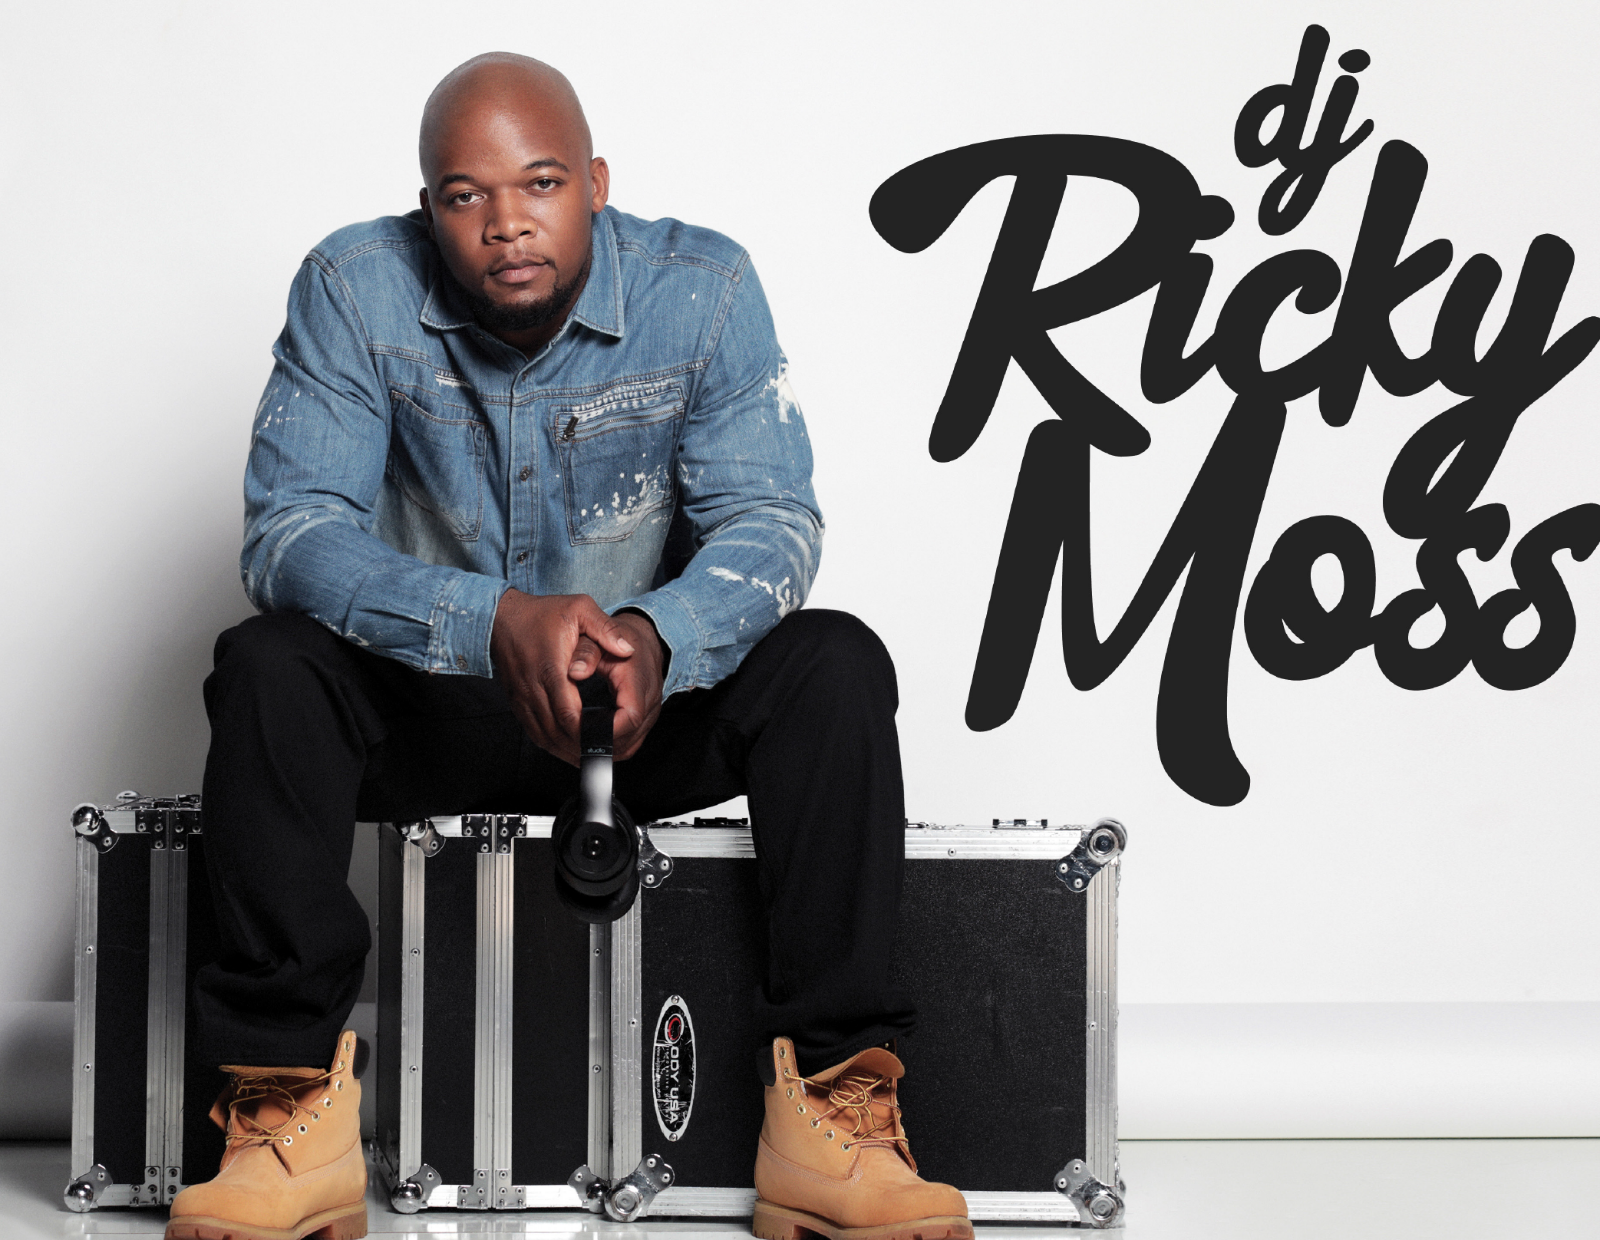 DJ Ricky Moss in the building!